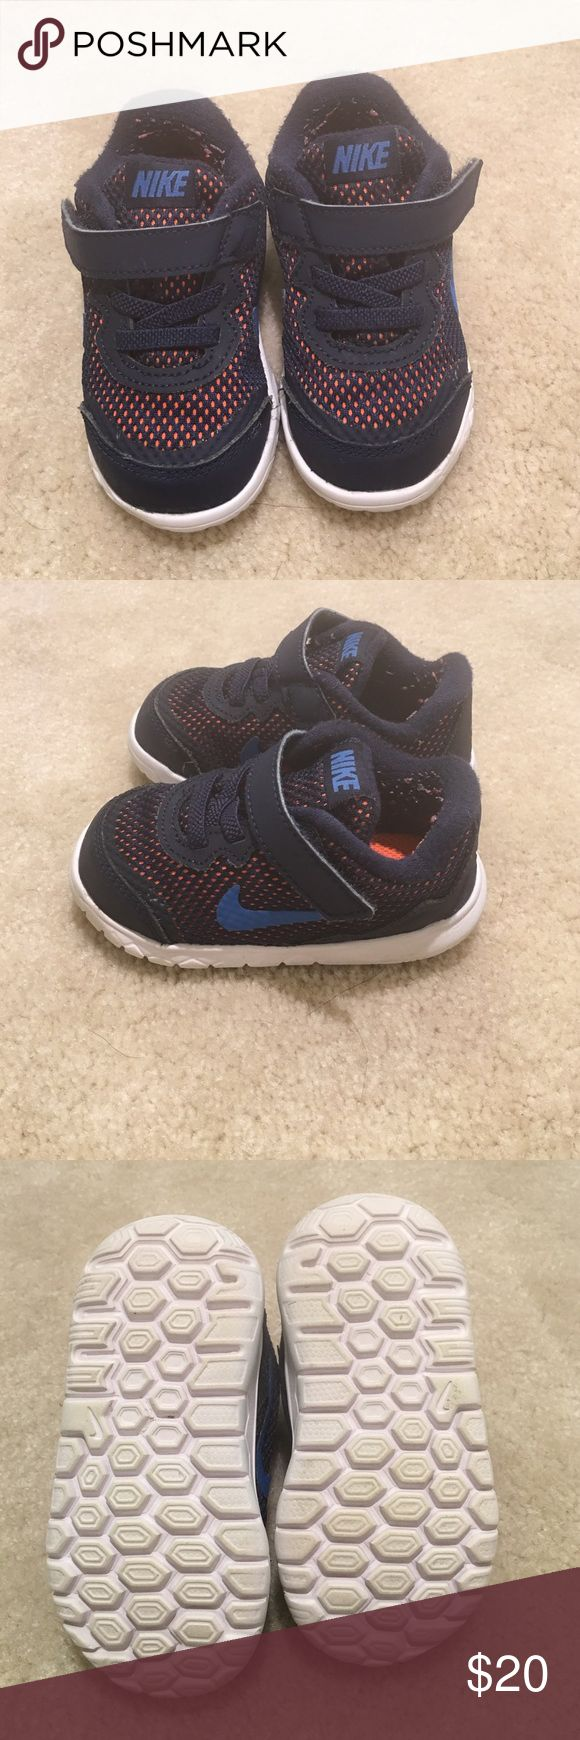 Nike boy's toddler sneakers The Nike boy's toddler sneakers are in perfect condition. The size of the sneaker is a 5. Nike Shoes Sneakers